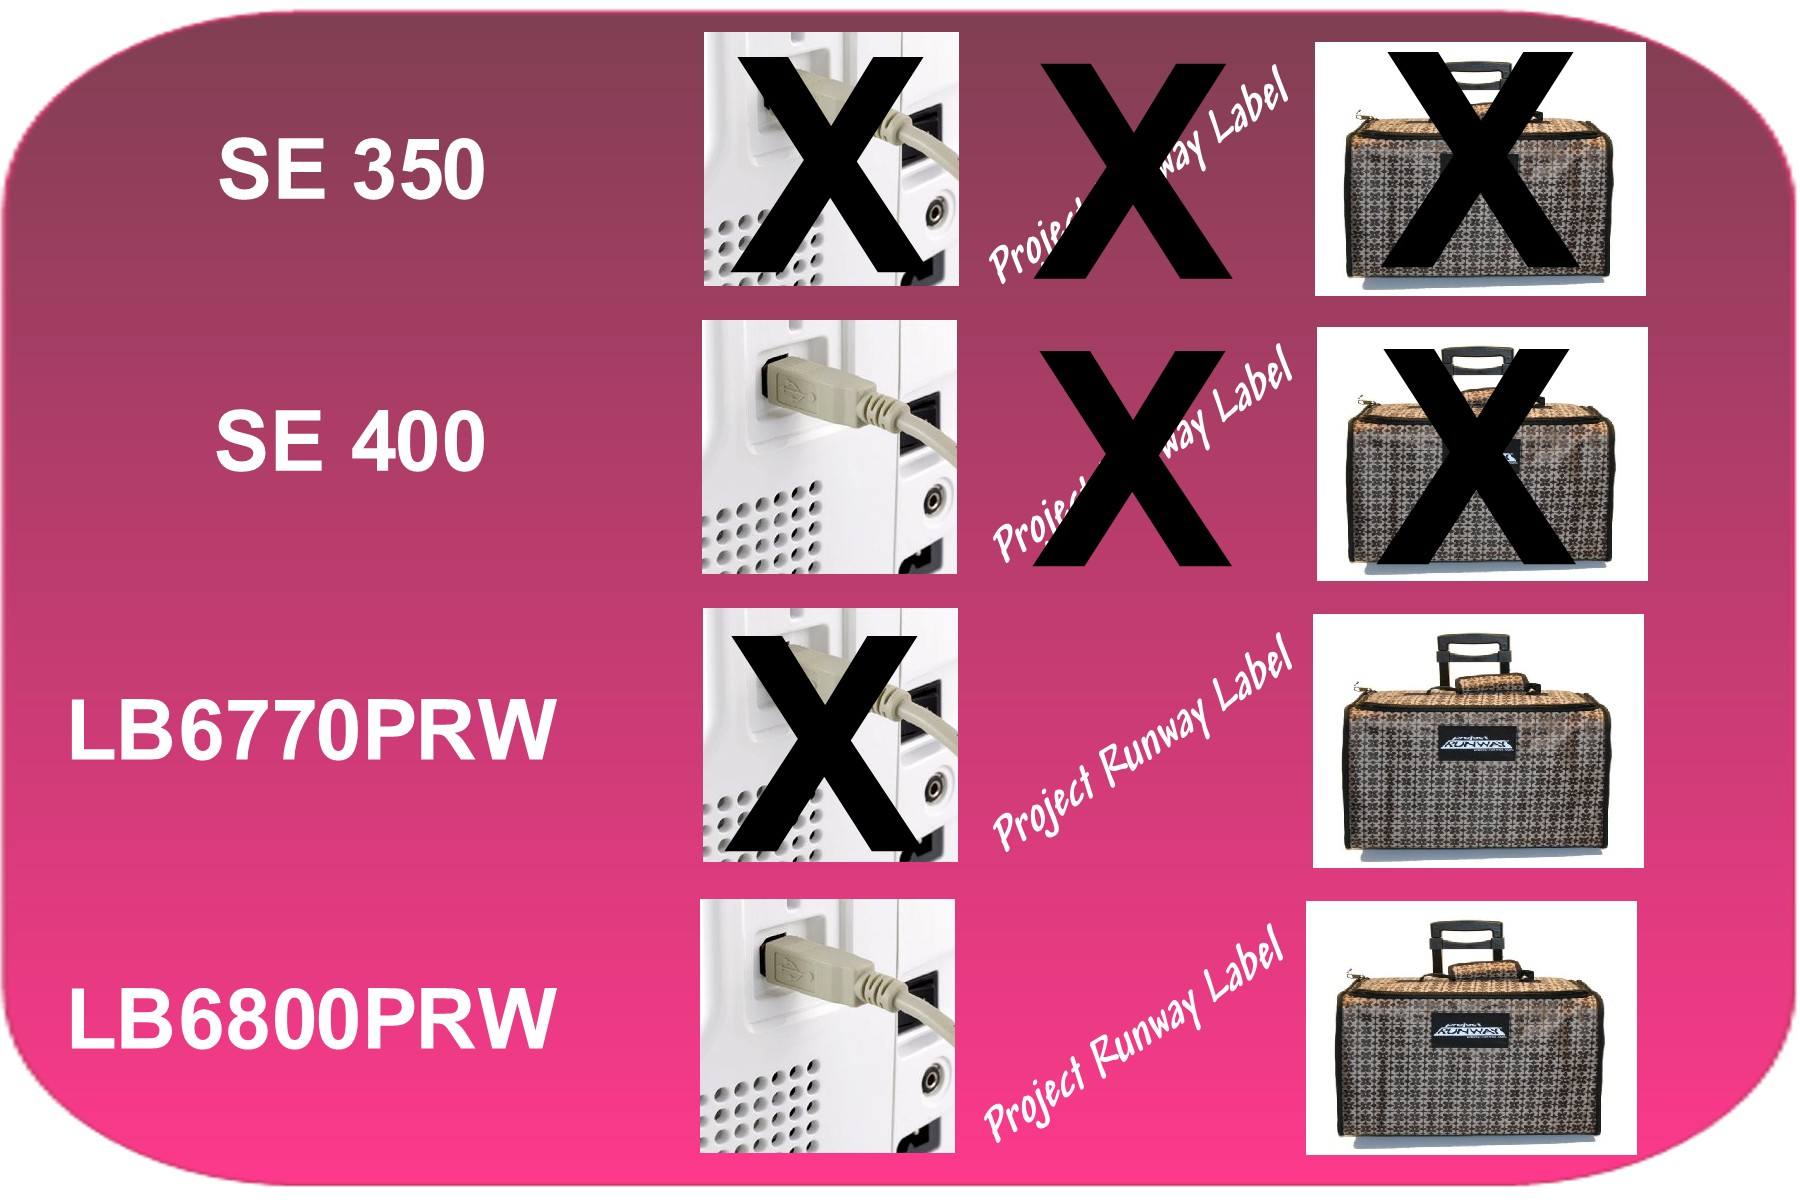 Compare SE 400 and Project Runway Sewing Machines